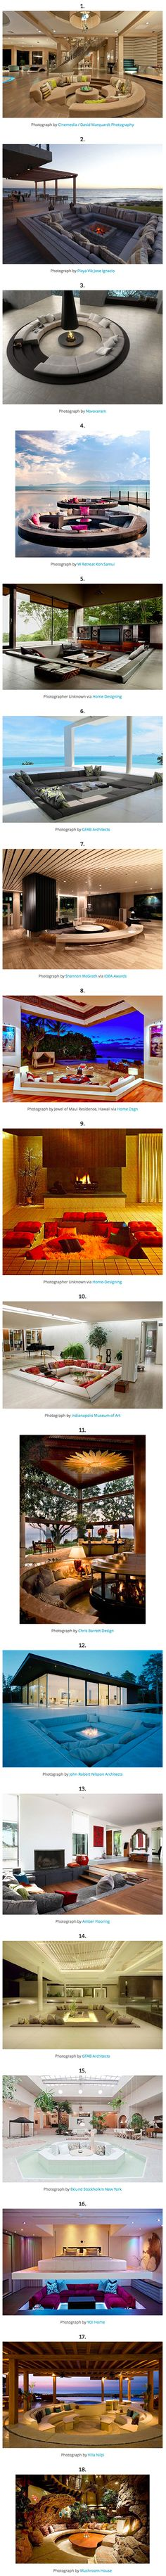 A conversation pit is an architectural features that incorporates built-in seating into a depressed section of flooring within a larger room. It is sometimes referred to as a 'sunken living room' and was a popular design style from the 1950s to 1970s across Europe and North America. Here are 18 awesome designs.